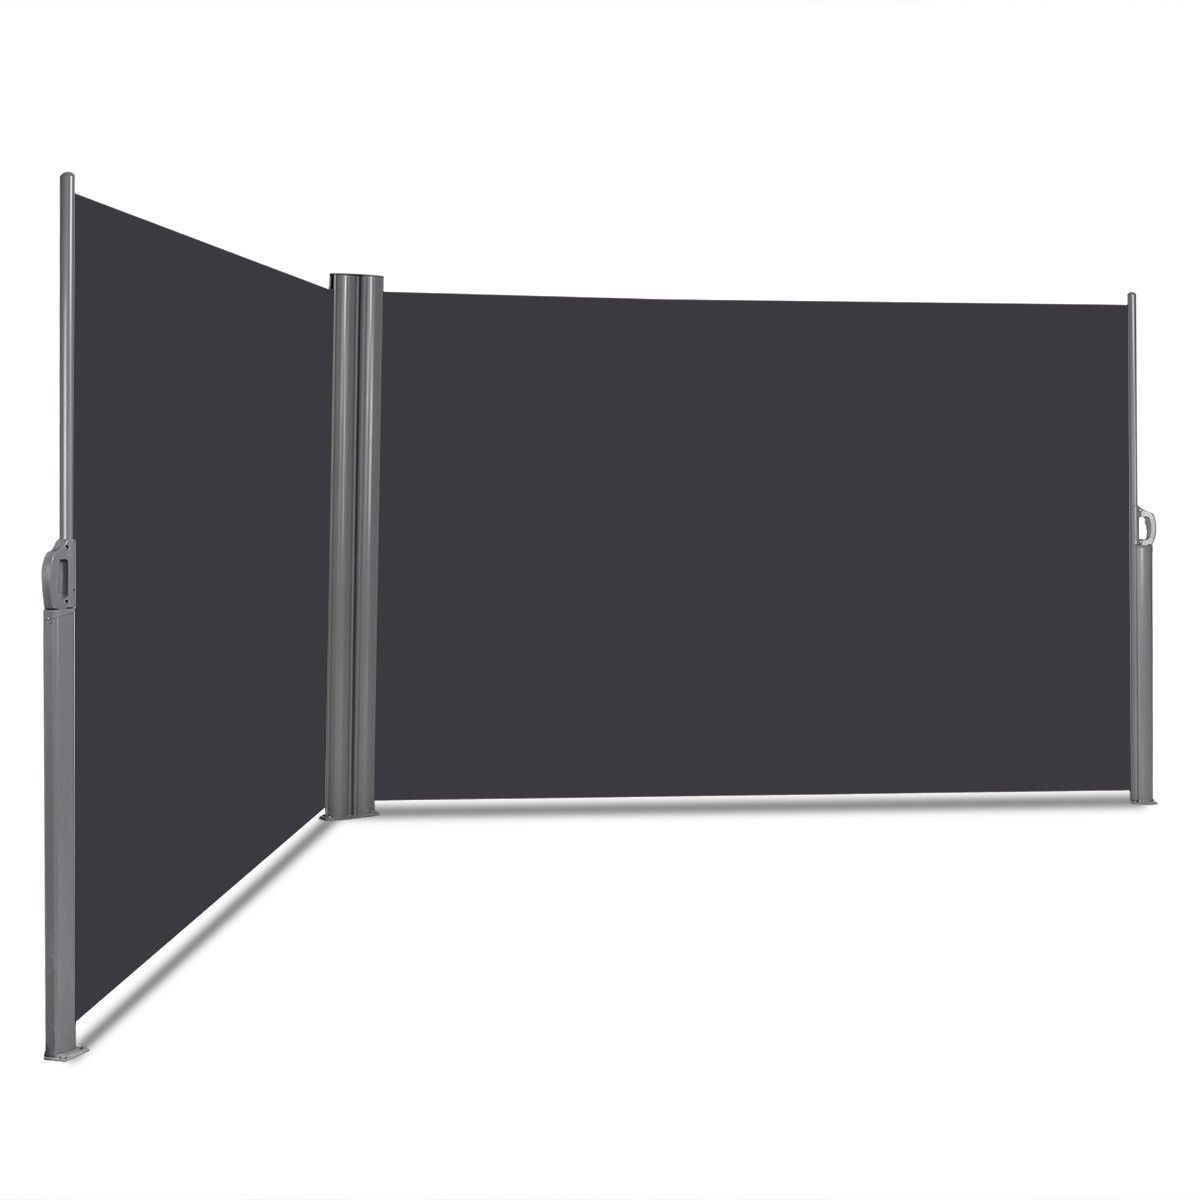 237 X 63 Patio Retractable Double Folding Side Awning Screen Divider Patio Outdoor Window Awnings Garden Privacy Screen